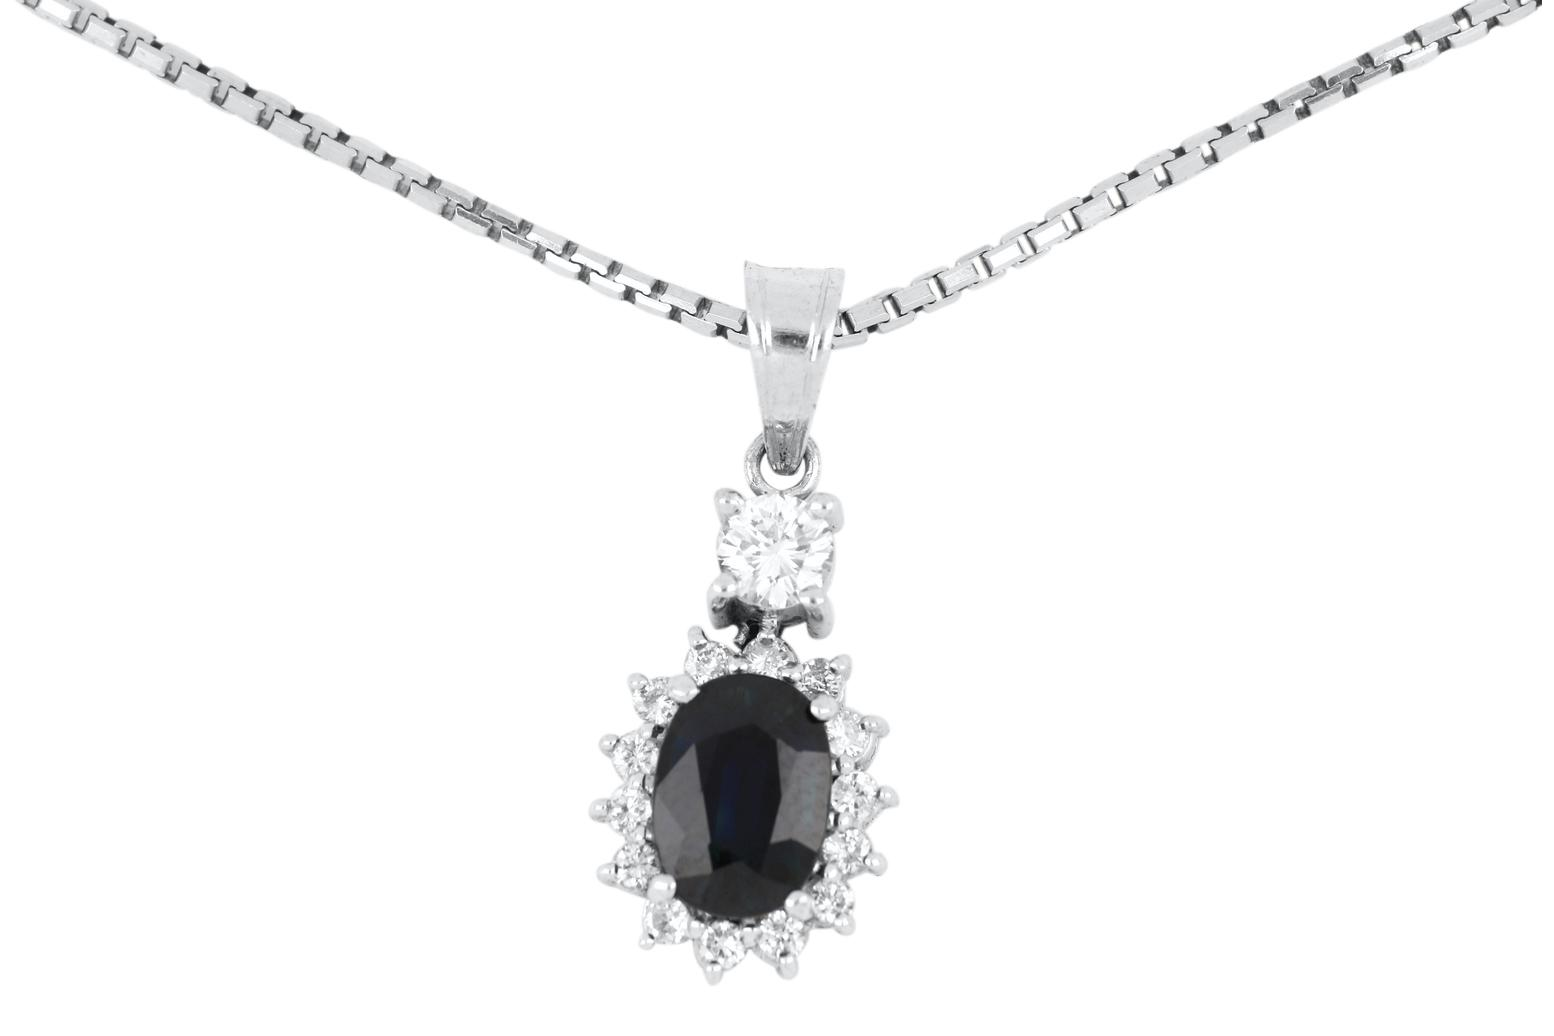 Handmade 14ct white gold sapphire & diamond pendant on 14ct white gold box link chain